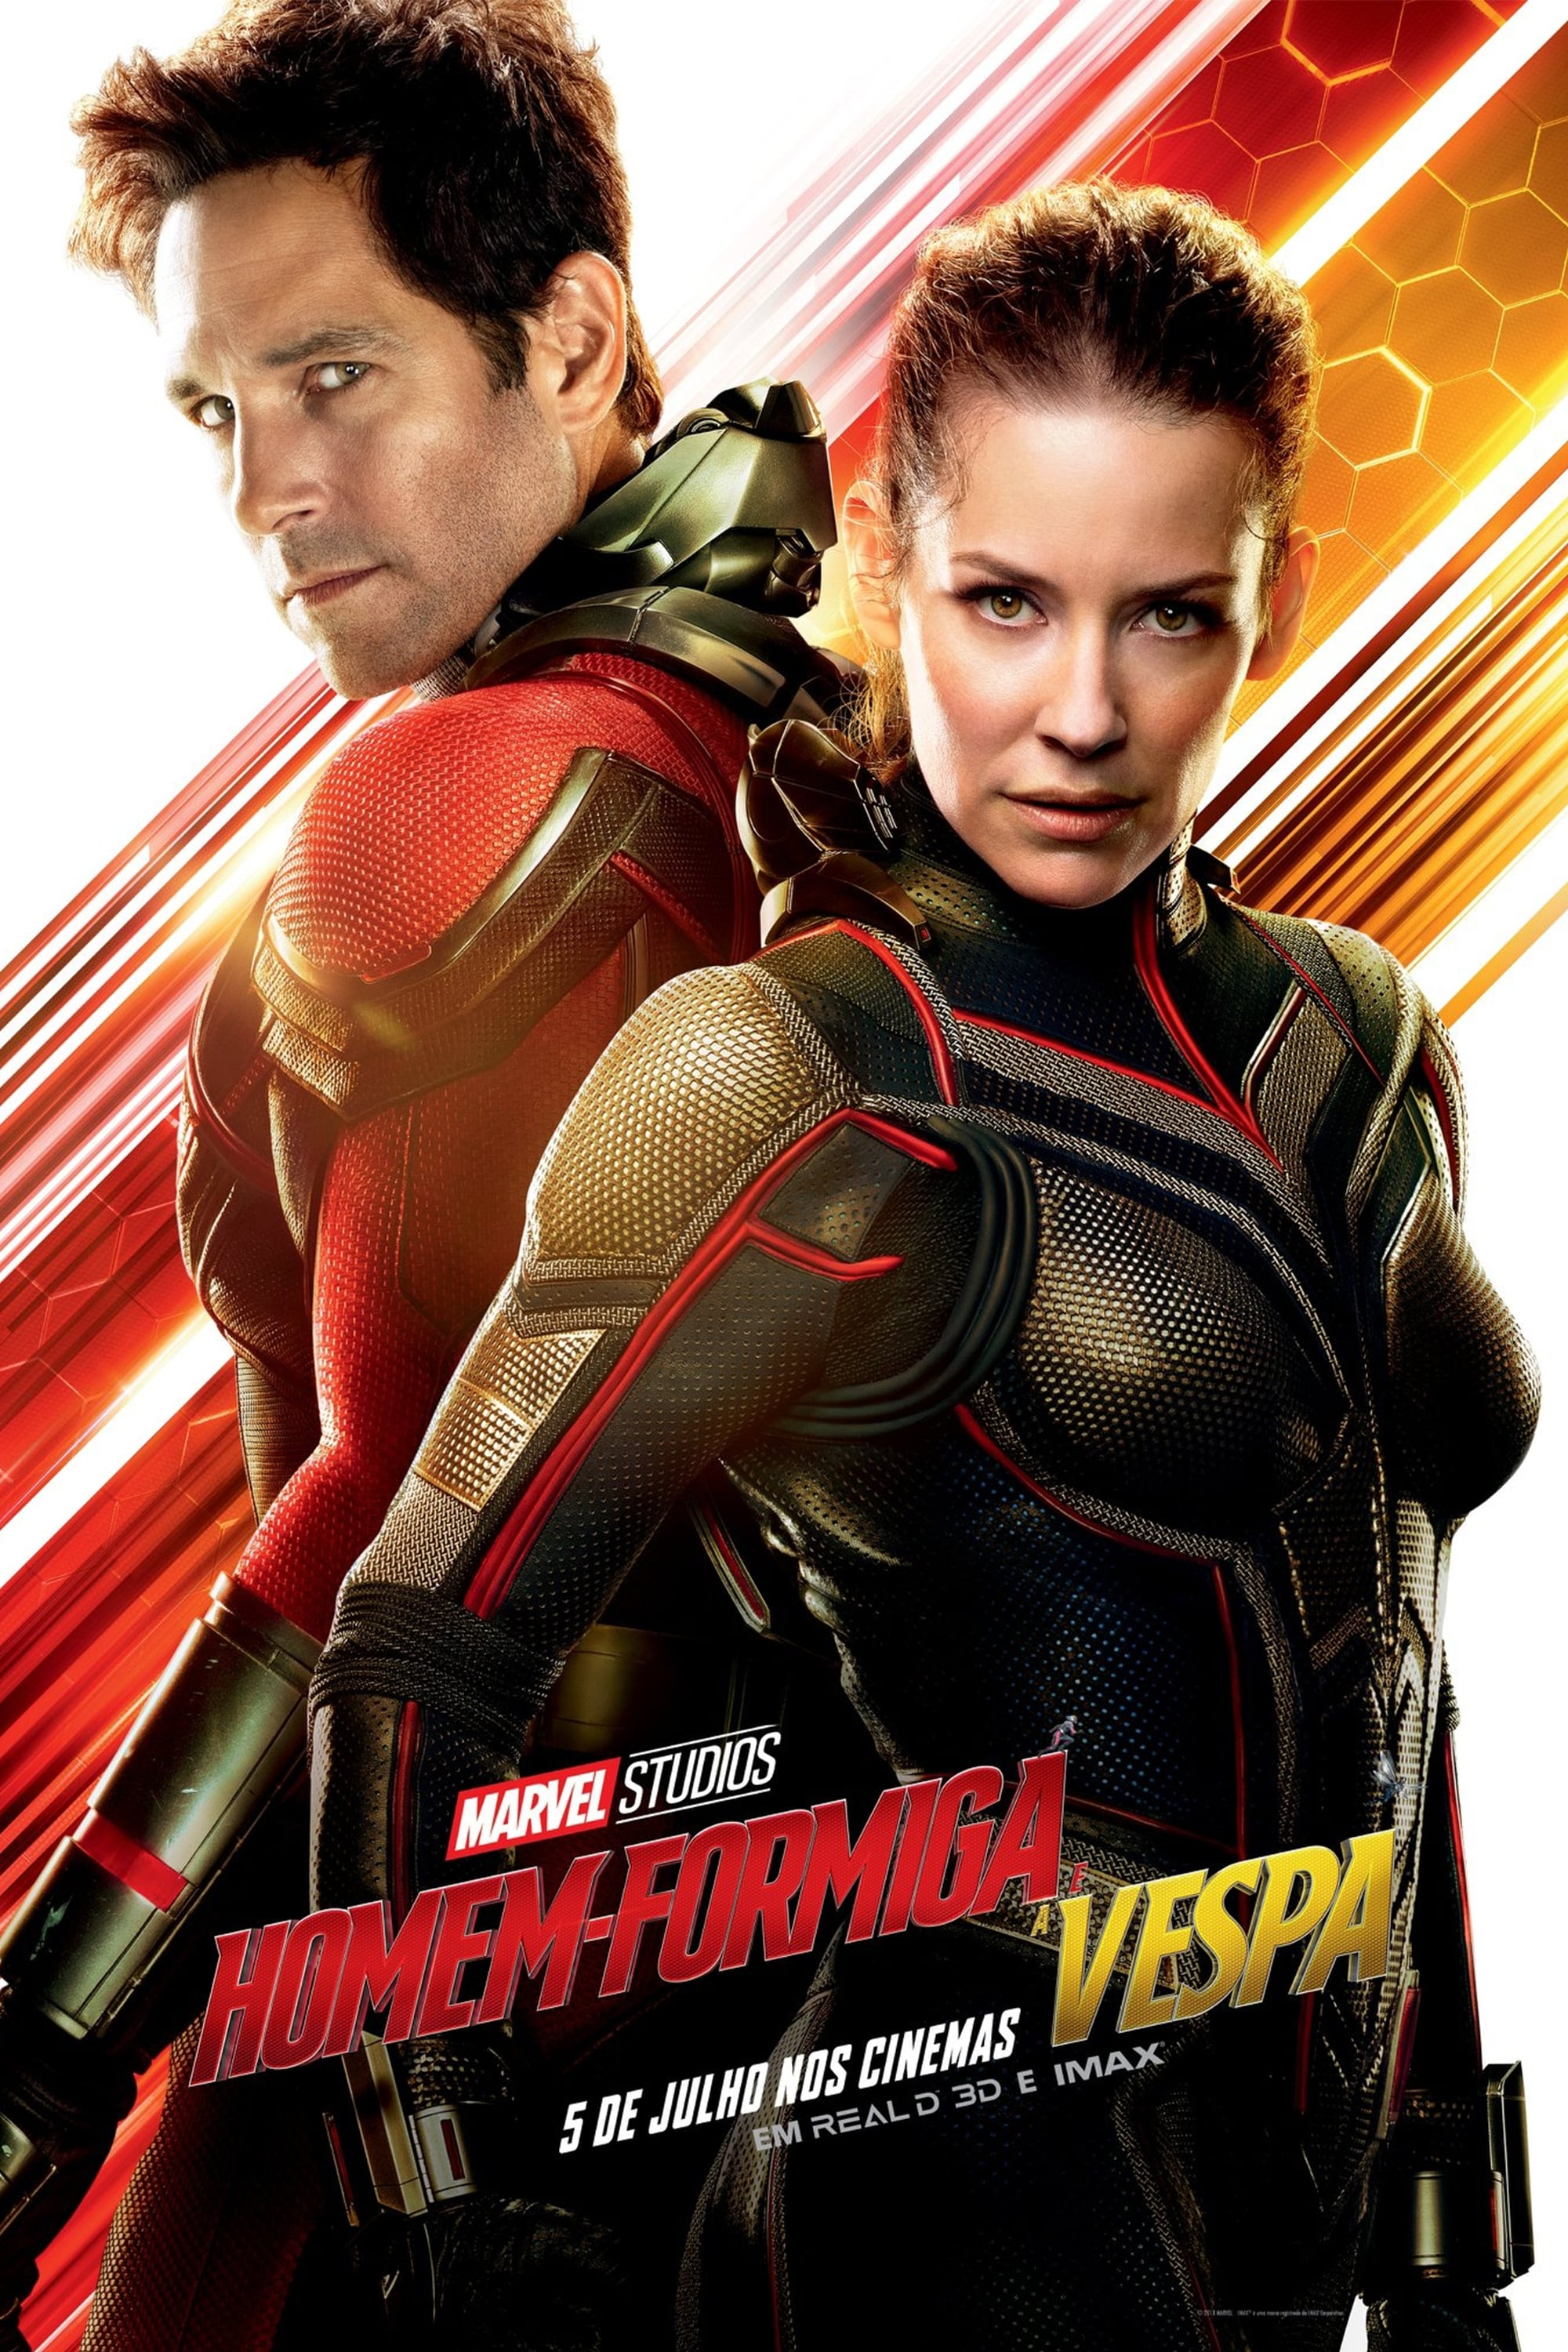 Poster and image movie Film Omul Furnica si Viespea - Omul-Furnică și Viespea - Ant-Man and the Wasp 2018